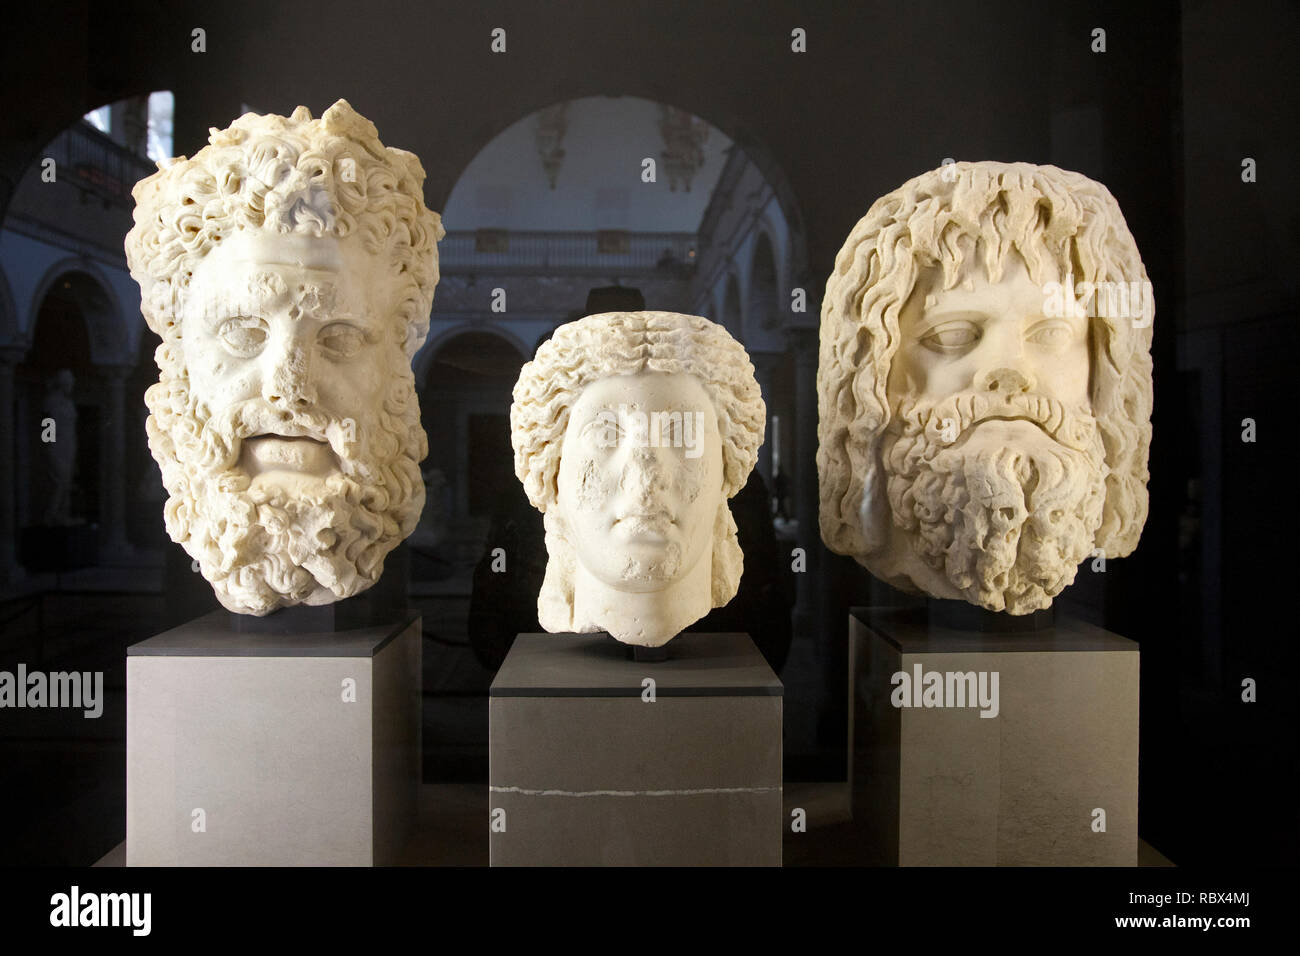 Portraits coming from Gightis with Hercules (left) and Jupiter Serapis (right), Bardo National Museum, Tunis, Tunisia, Africa Stock Photo